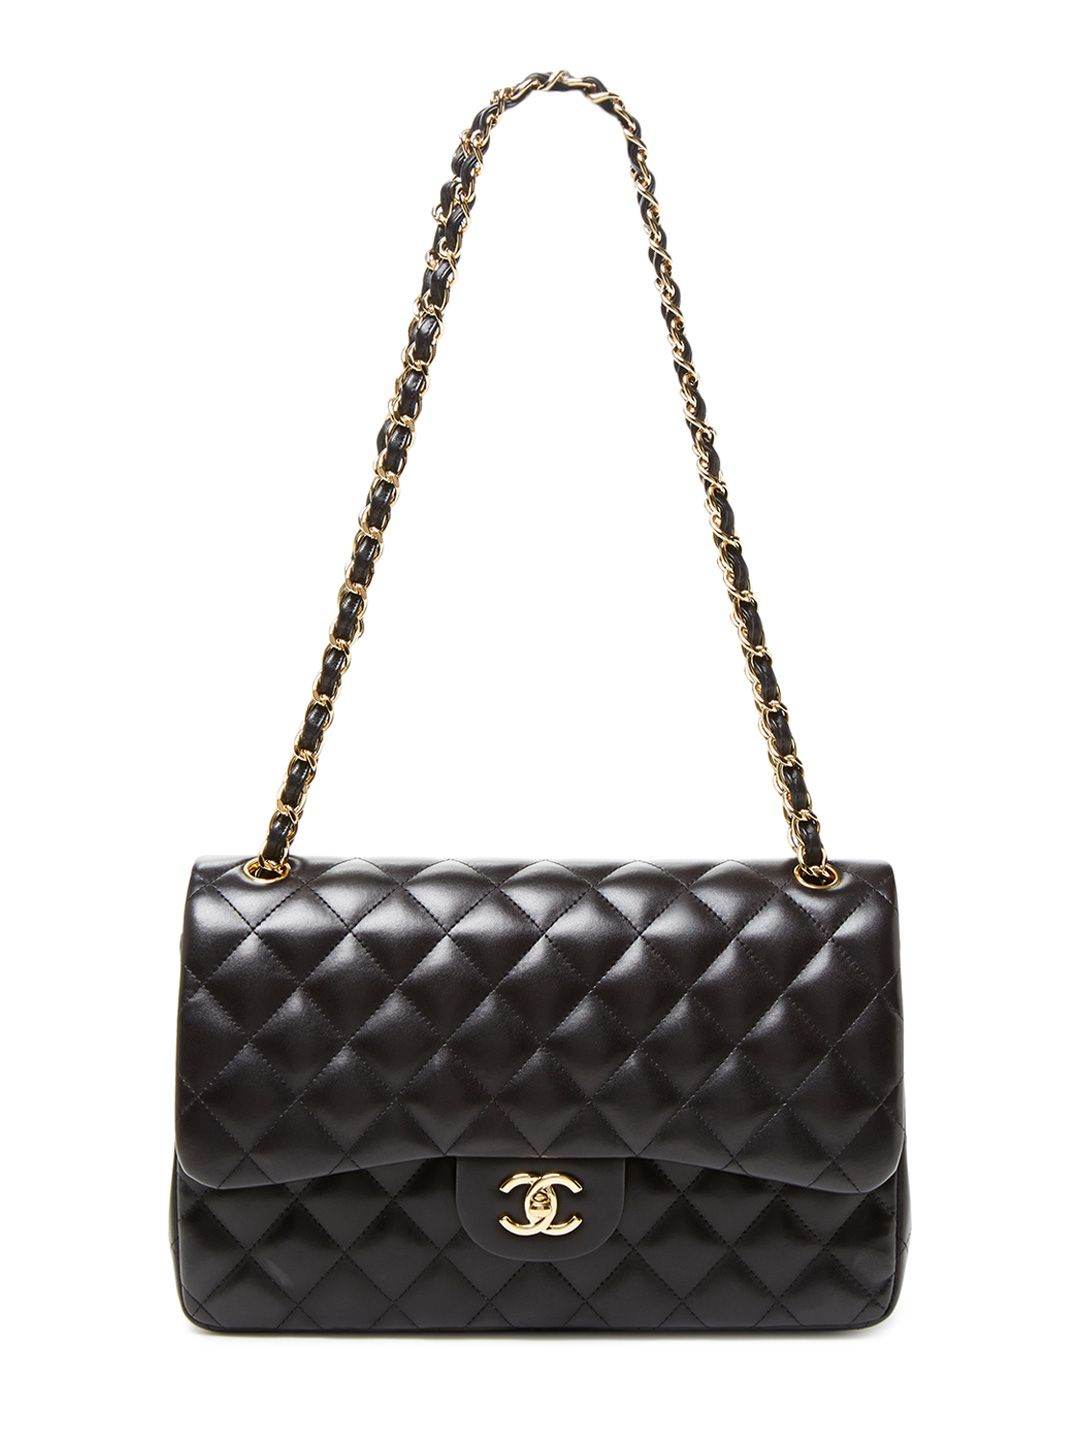 cd3ab38d41ad2f Black Quilted Lambskin Jumbo Classic 2.55 Double Flap Bag   Women ...